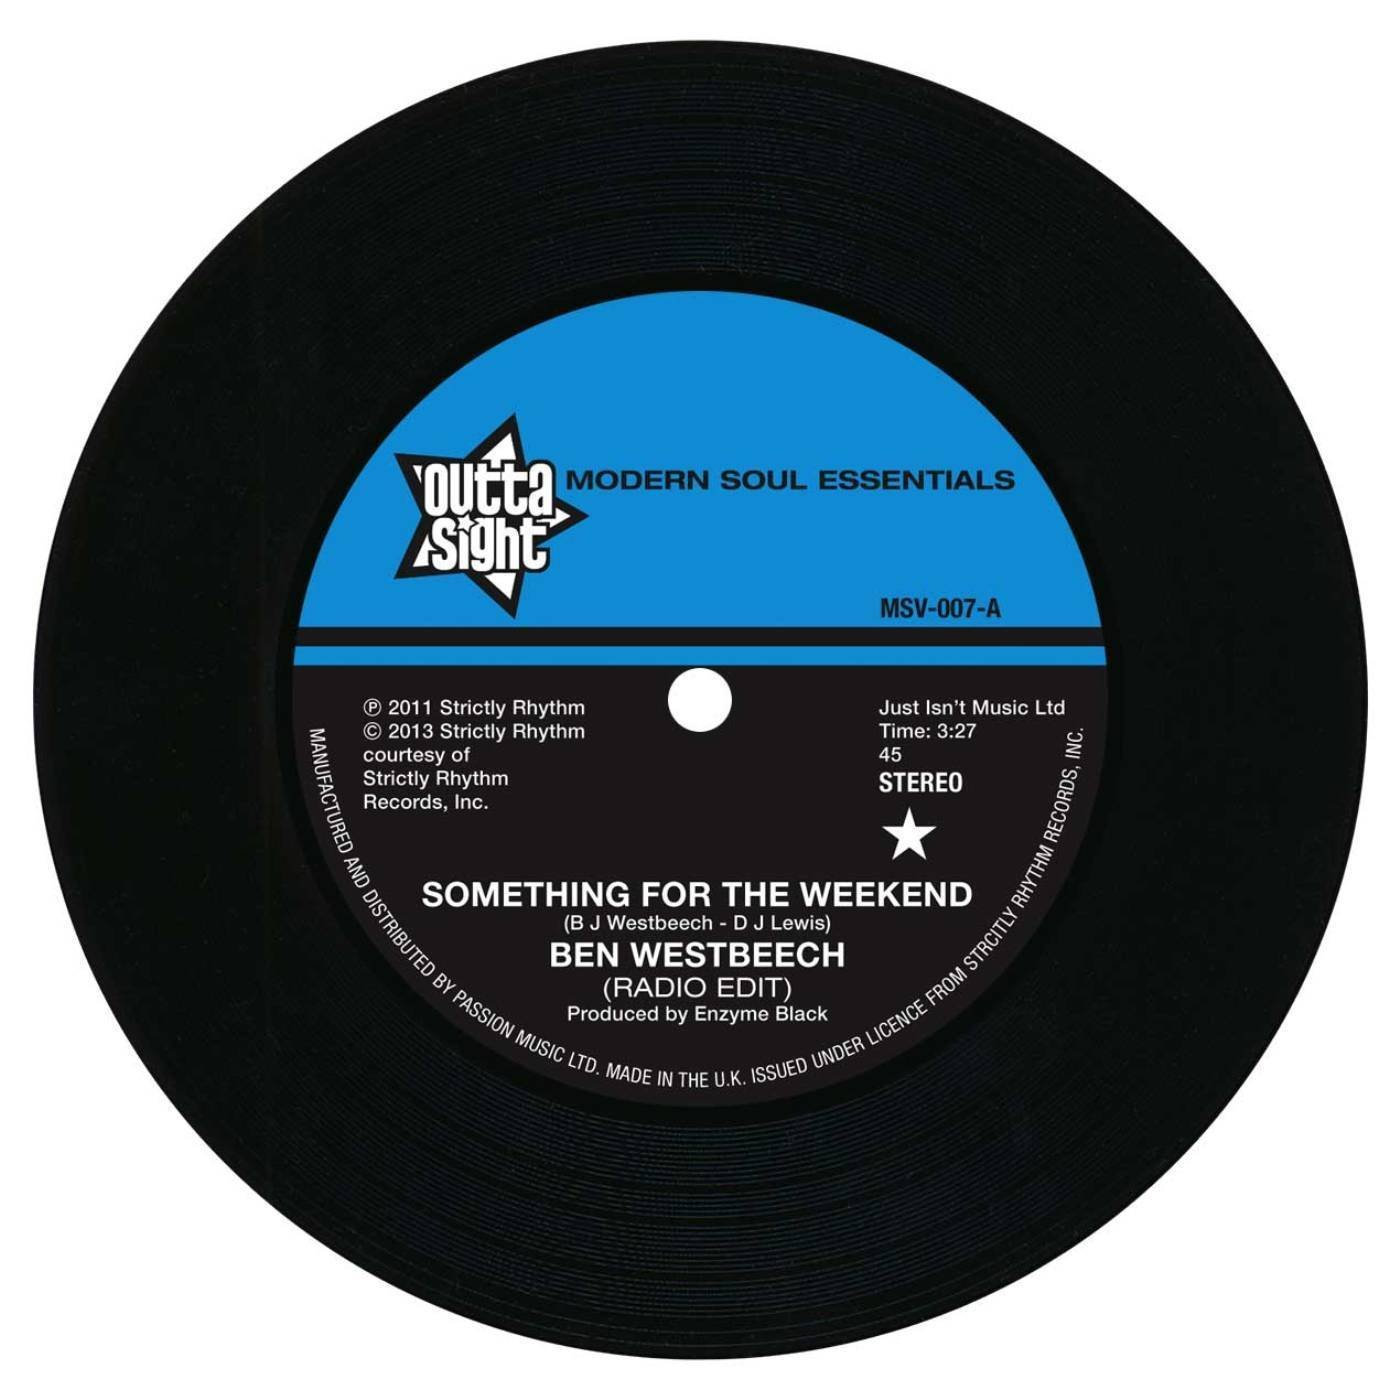 Ben Westbeech – Something For The Weekend (Radio Edit) / (Joey Negro Z Remix) 45 (Outta Sight) 7″ Vinyl